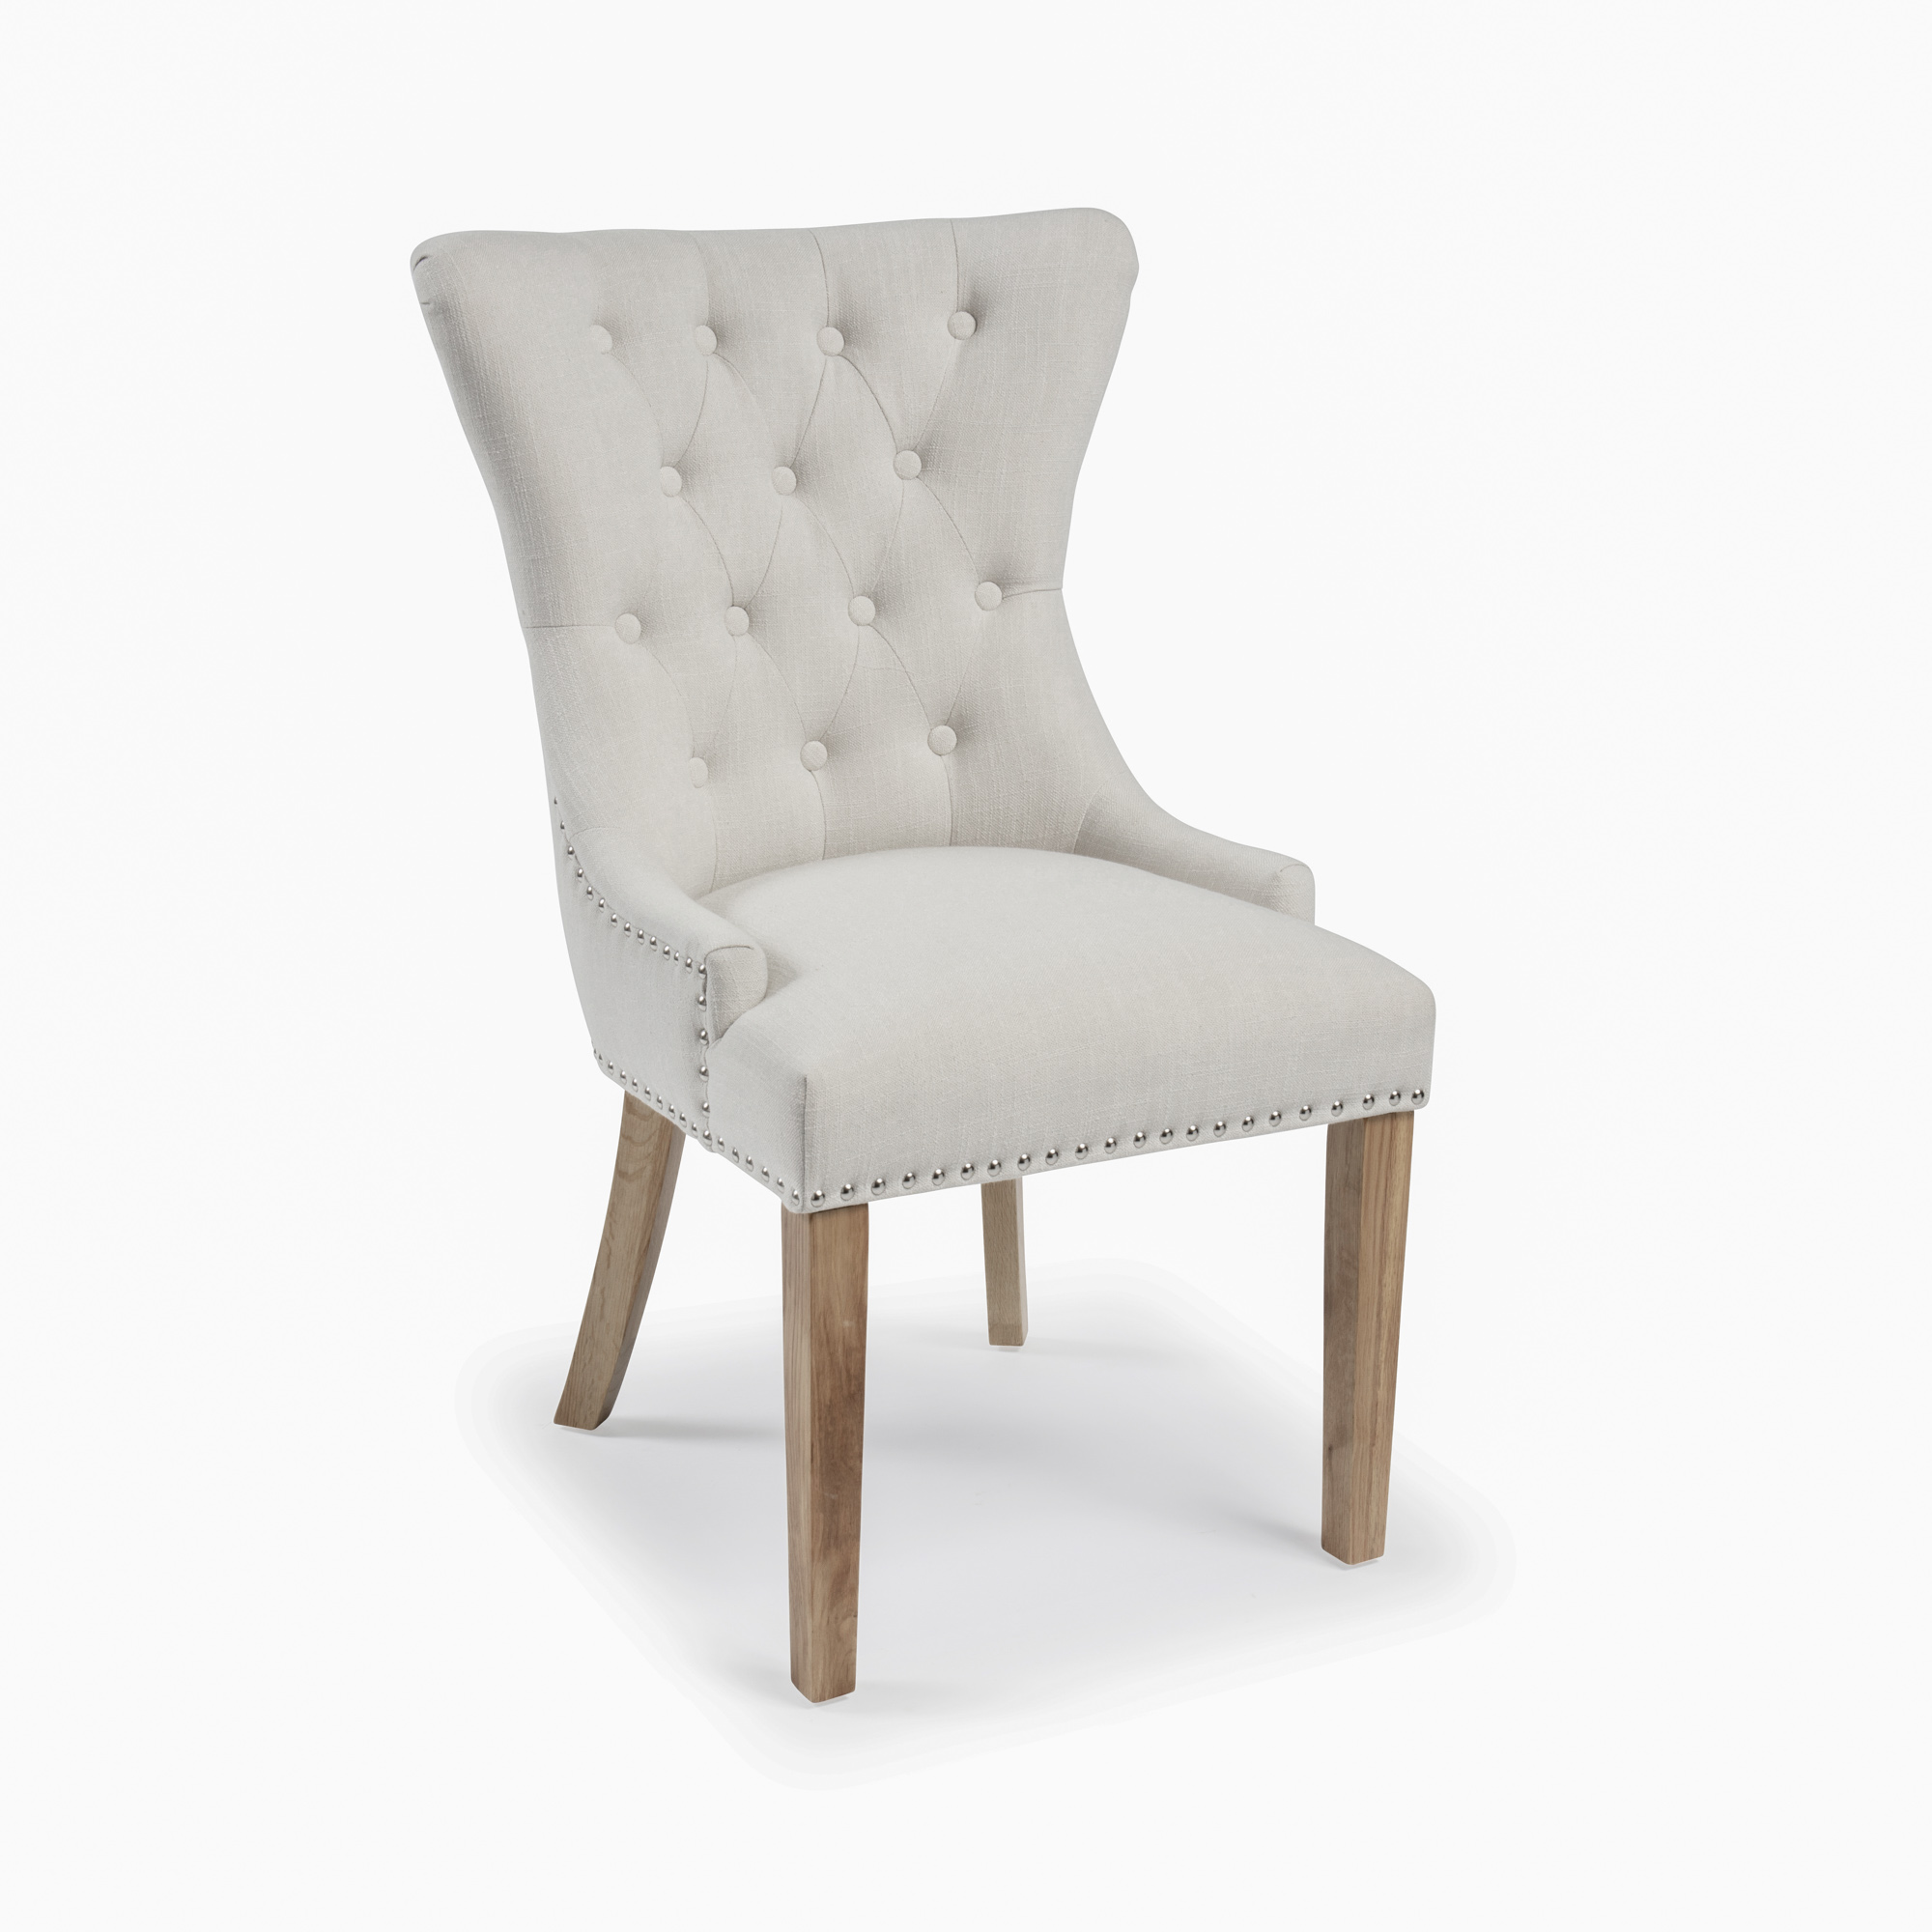 Knightsbridge Natural Linen Dining Chair with Hoop – Sets